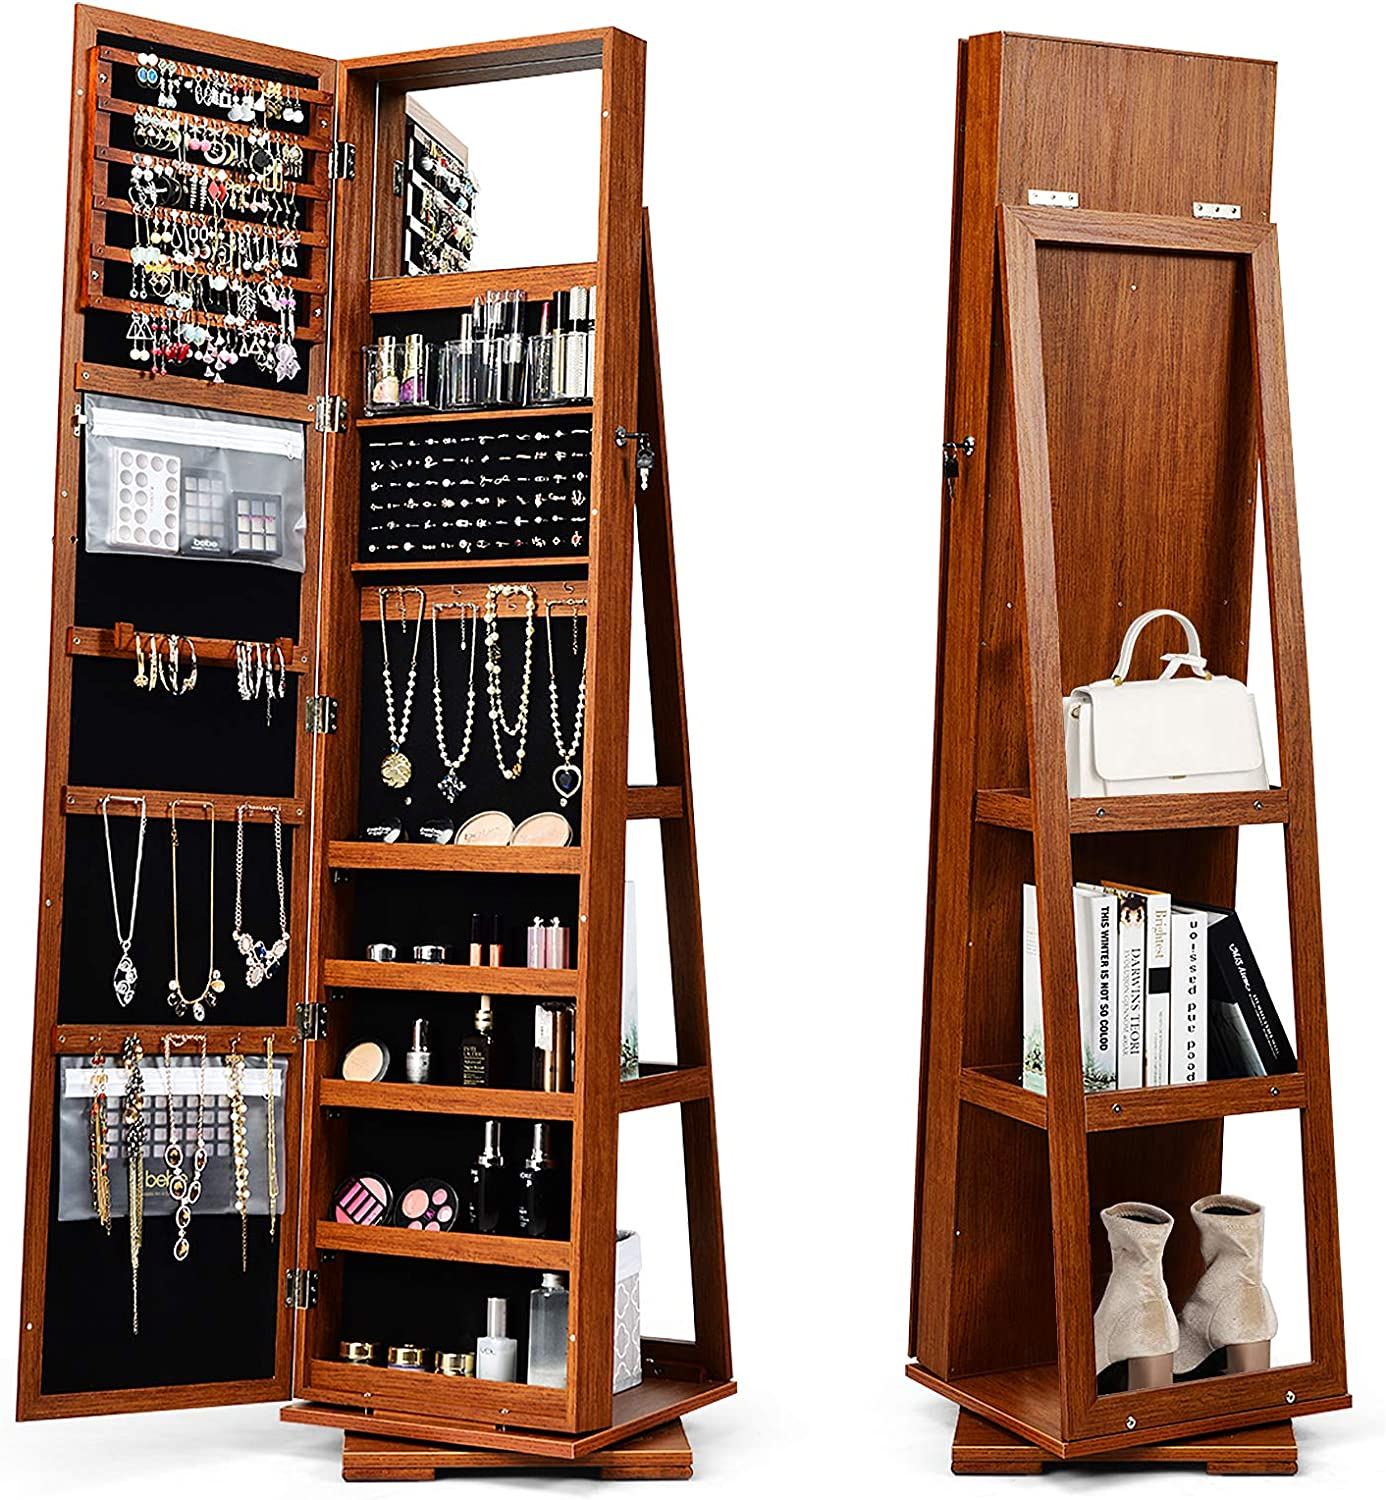 Hysache 360 Rotating Bargain sale Mirrored Jewelry Cabinet Many popular brands Jew Free Standing